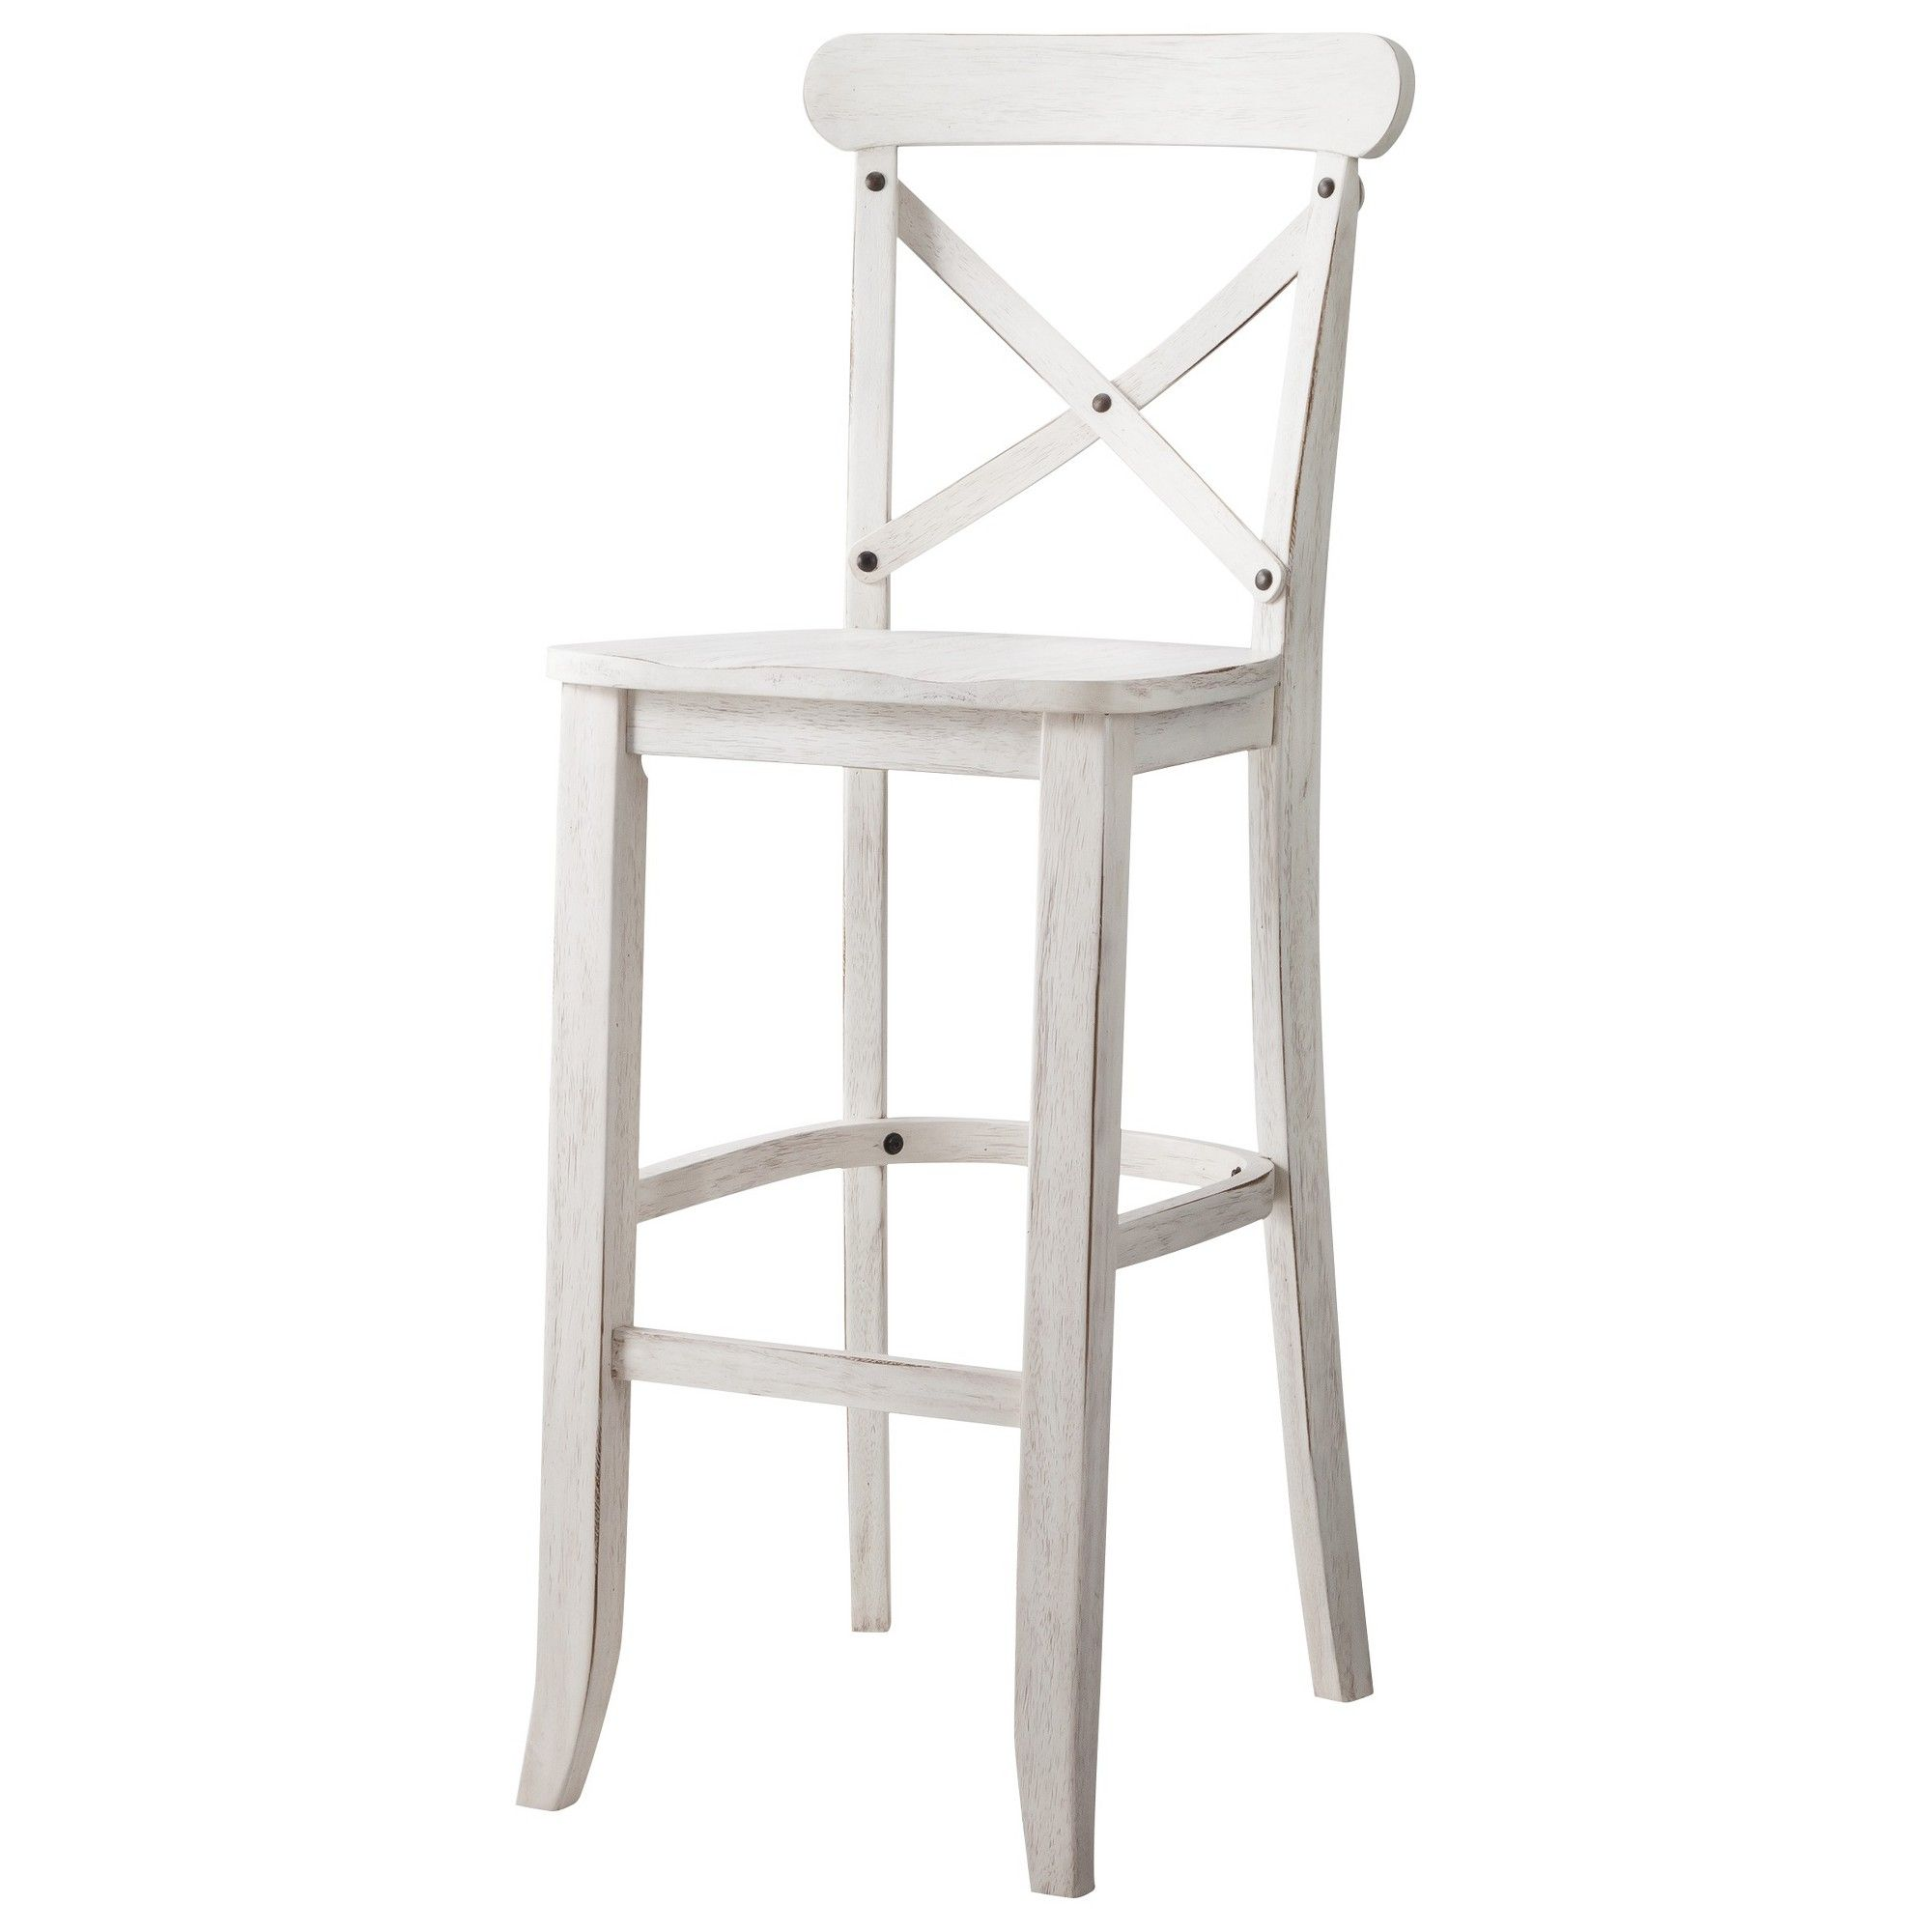 Harvester X Back 30 Barstool Hardwood Beekman 1802 Farmhouse